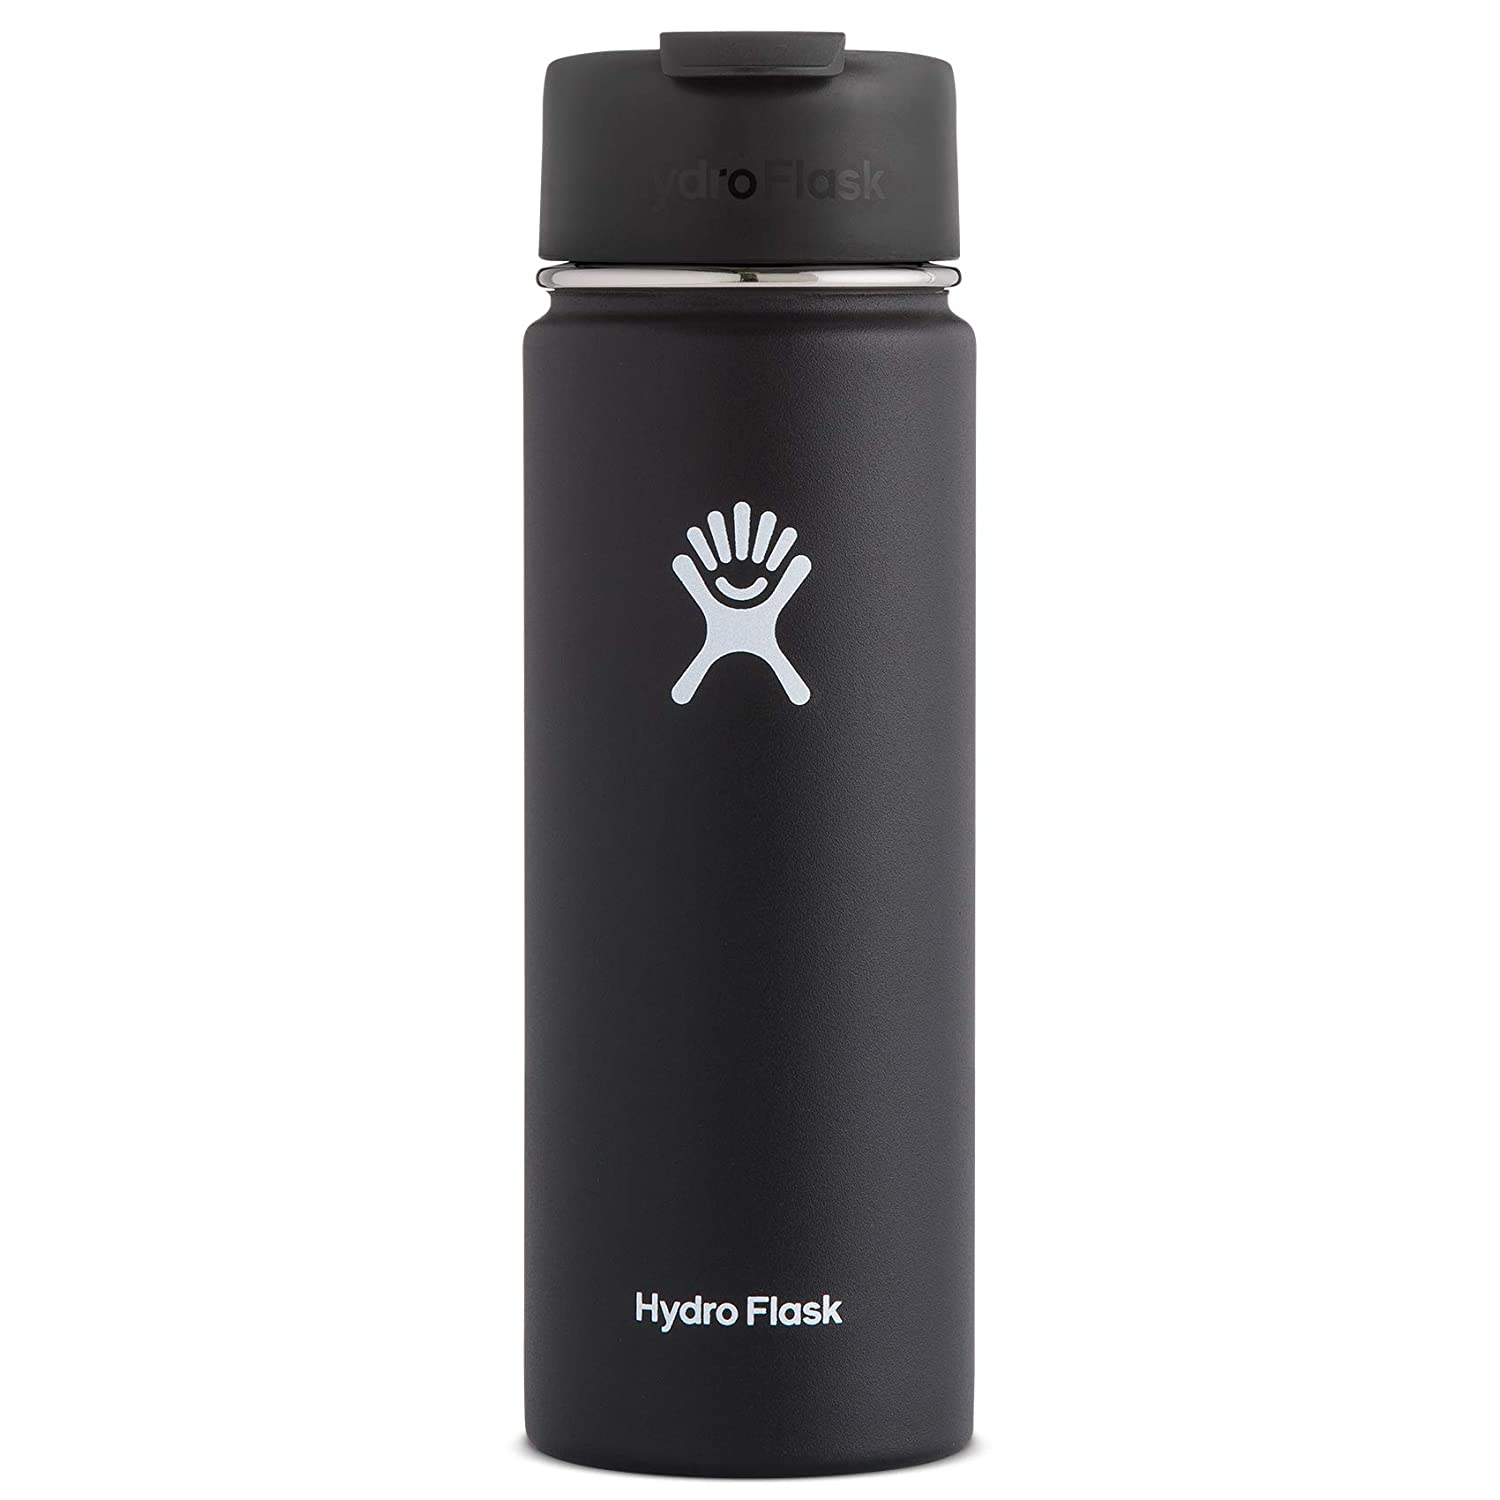 Hydro Flask 20 oz Travel Coffee Flask | Stainless Steel & Vacuum Insulated | Wide Mouth with Hydro Flip Cap | Black